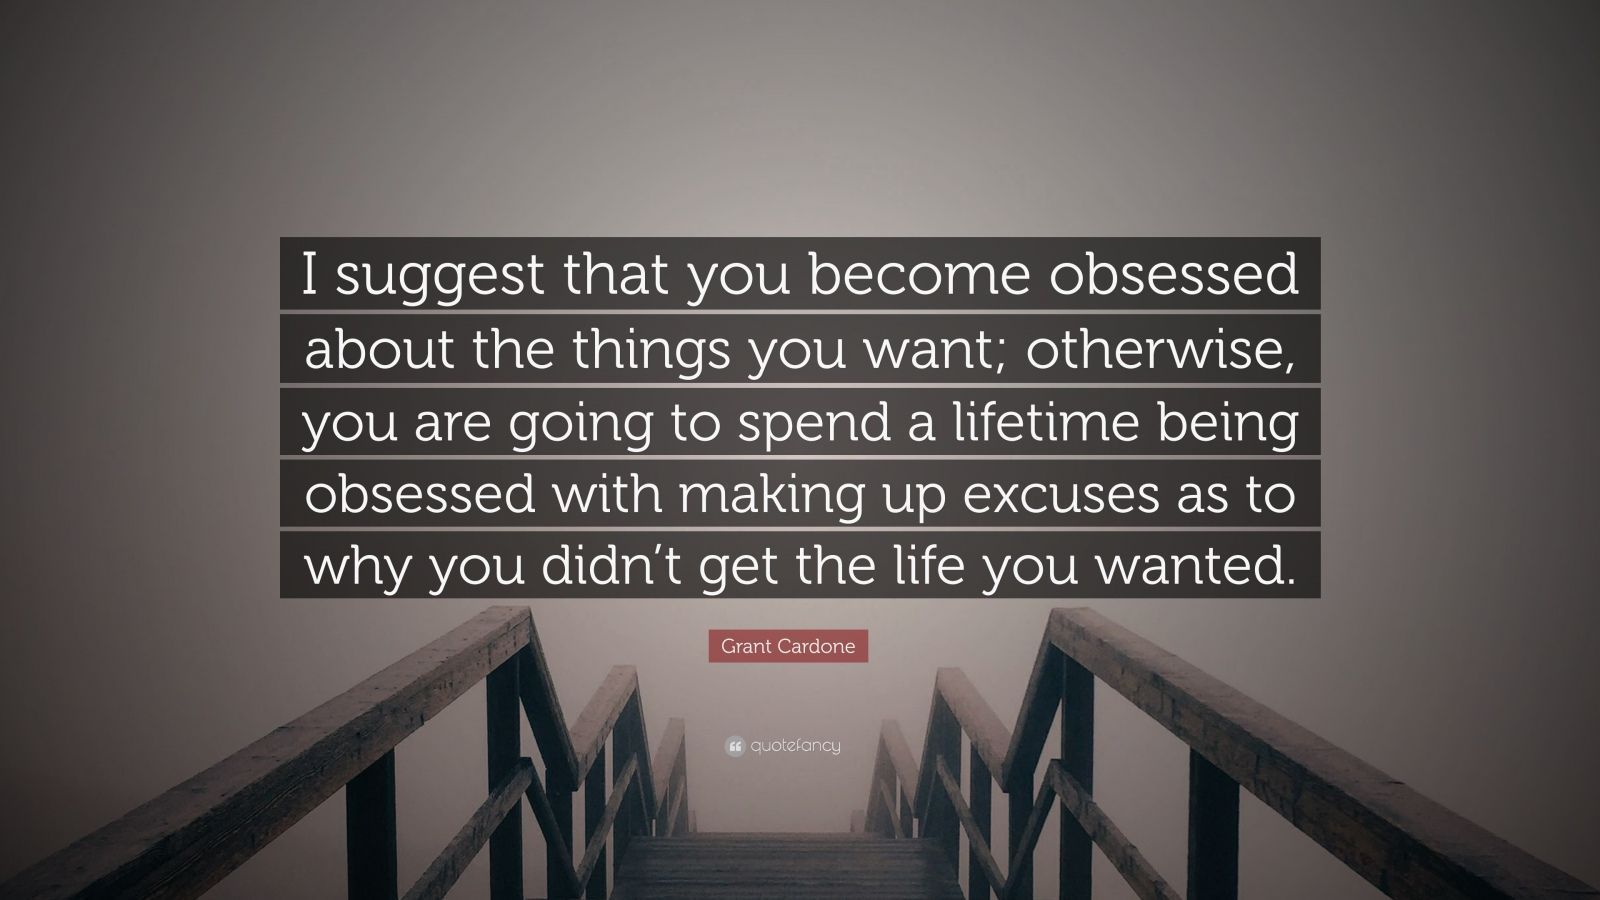 """Grant Cardone Quote: """"I suggest that you become obsessed about the things you want; otherwise, you are going to spend a lifetime being obsessed with making up excuses as to why you didn't get the life you wanted."""""""